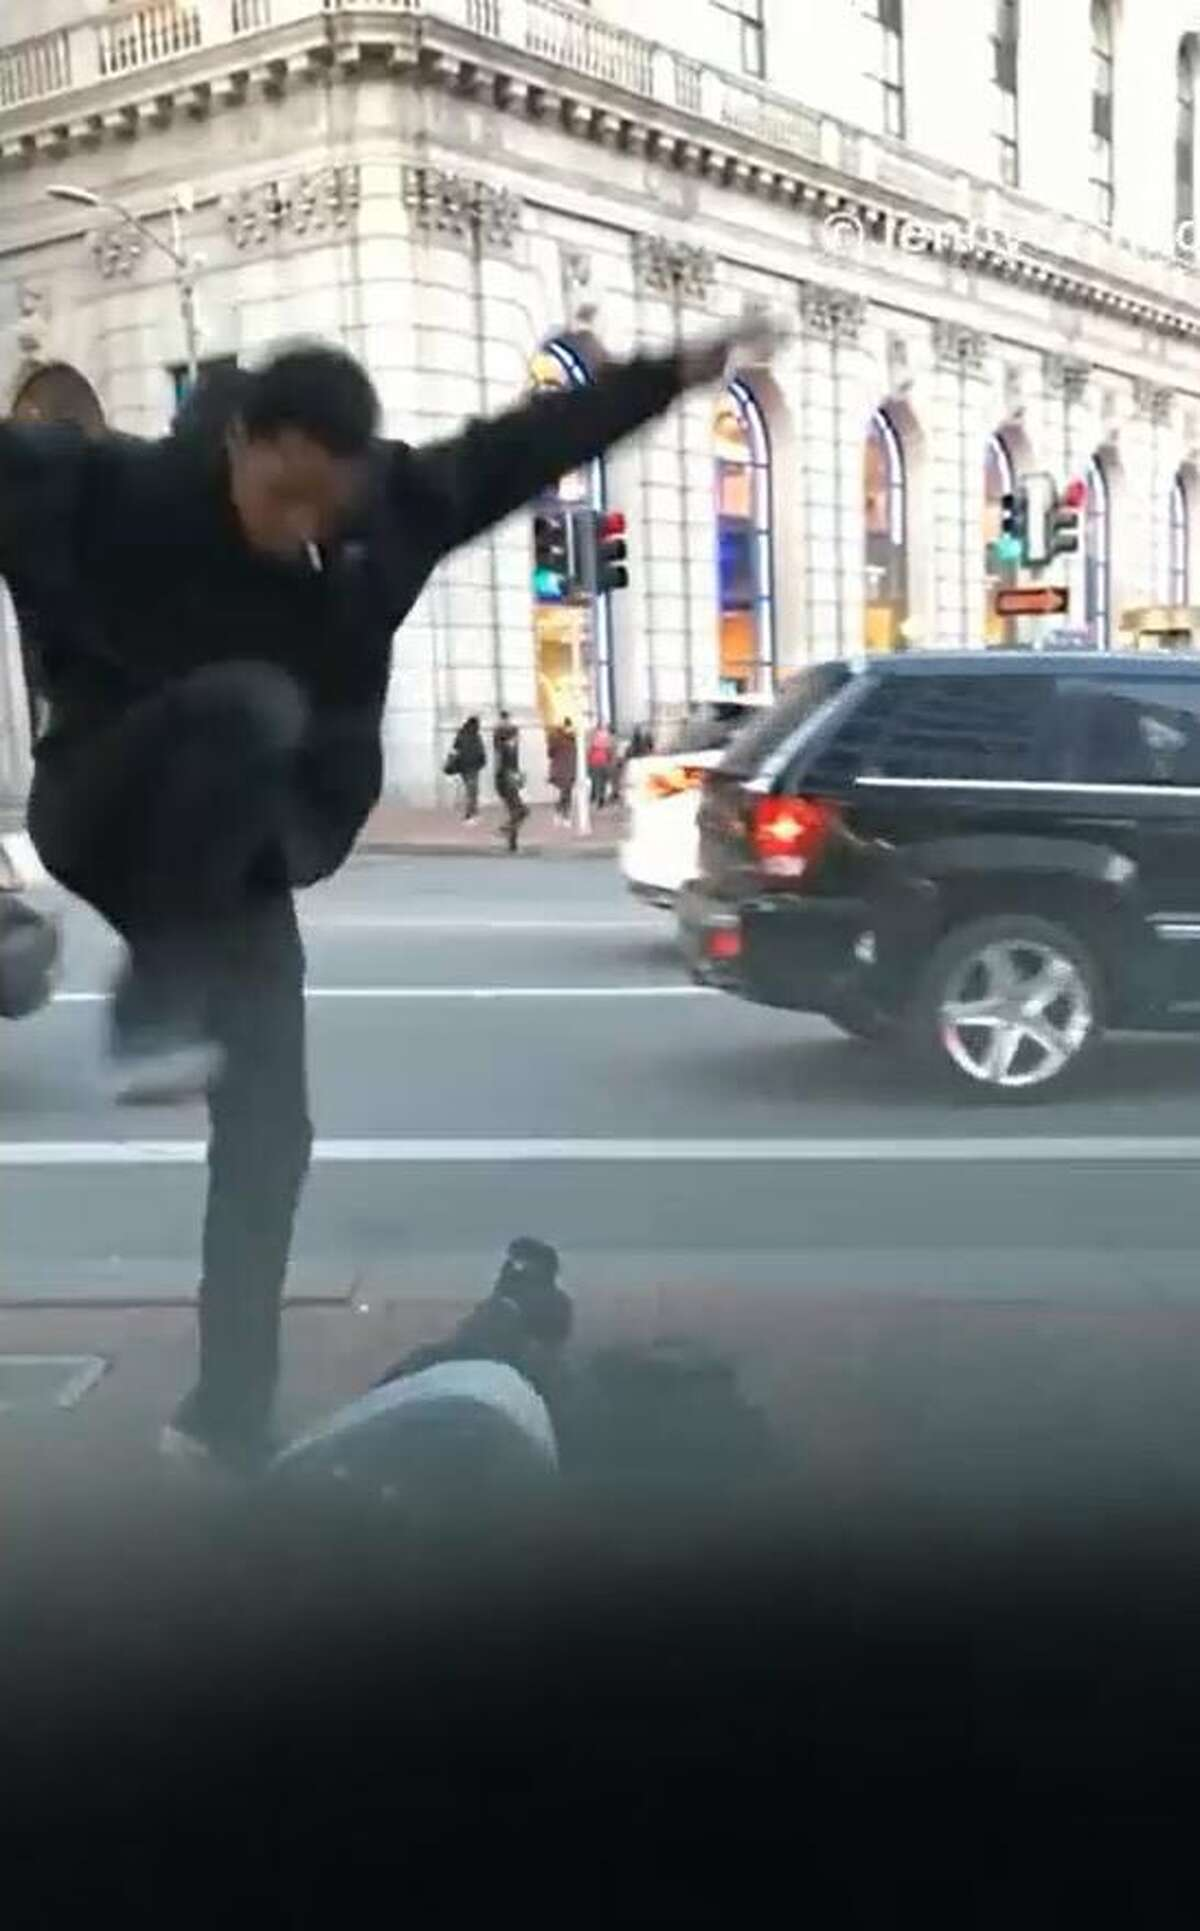 A manhunt is under way for 25-year-old Oakland resident Melton Earl Kelly, who police identified as a suspect in an attack near Union Square in San Francisco on Friday.